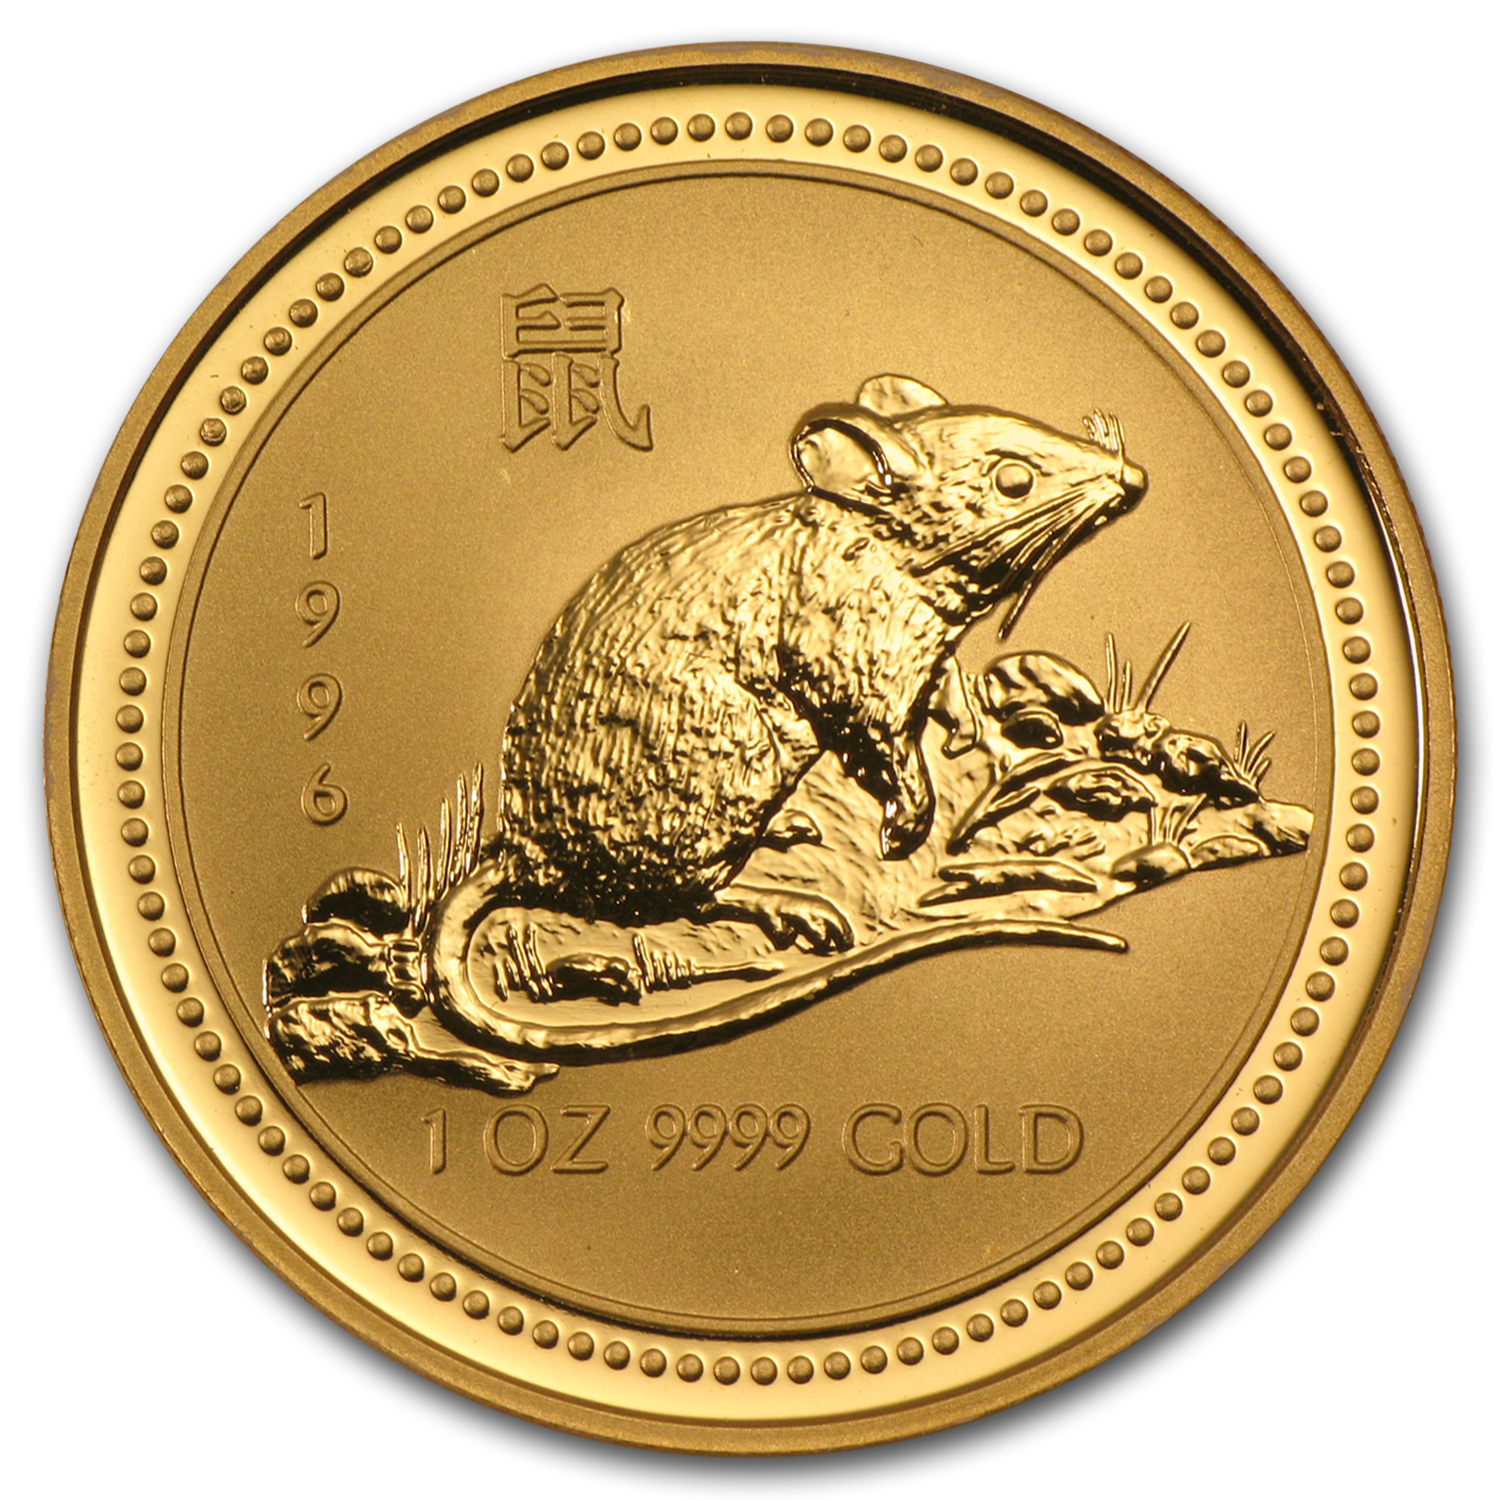 1996 Australia 1 oz Gold Lunar Rat (Series I)